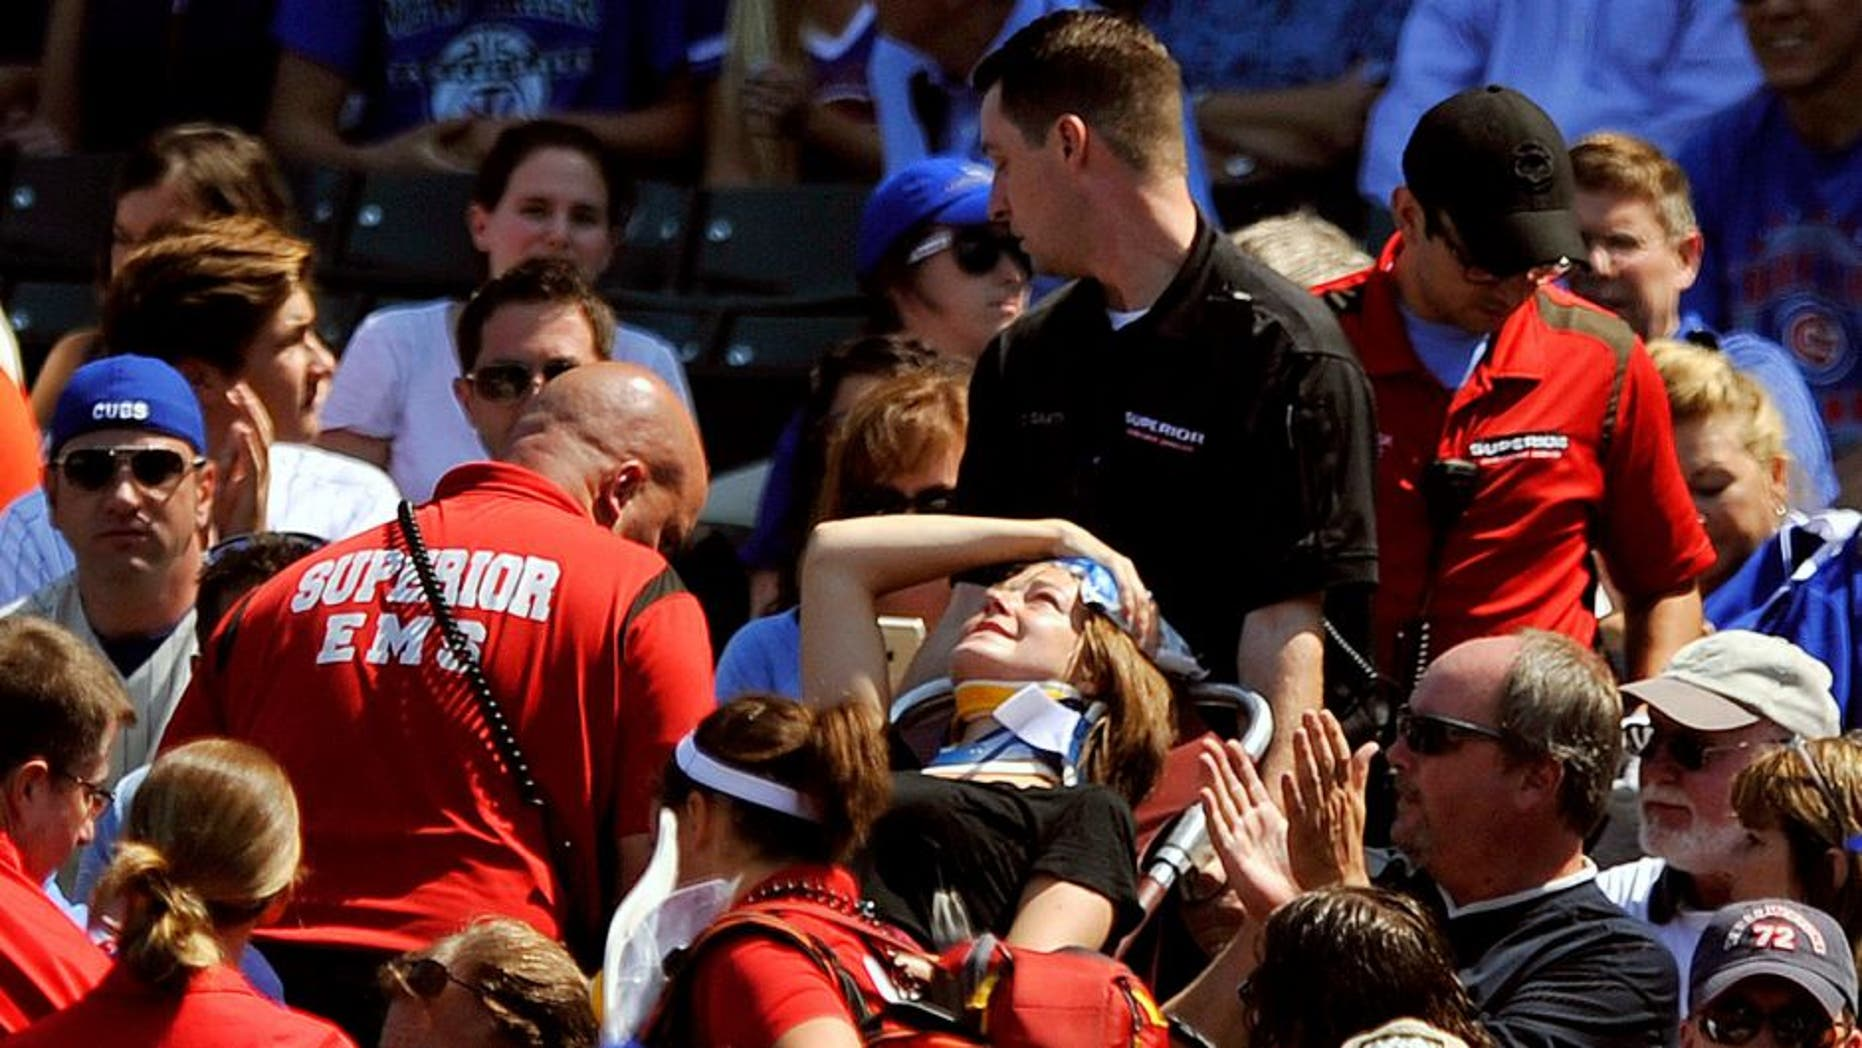 A fan is carried away after being hit a by a line-drive foul ball during the first inning of a baseball game between the Chicago Cubs and the Atlanta Braves at Wrigley Field, Sunday, Aug. 23, 2015, in Chicago. (AP Photo/Paul Beaty)